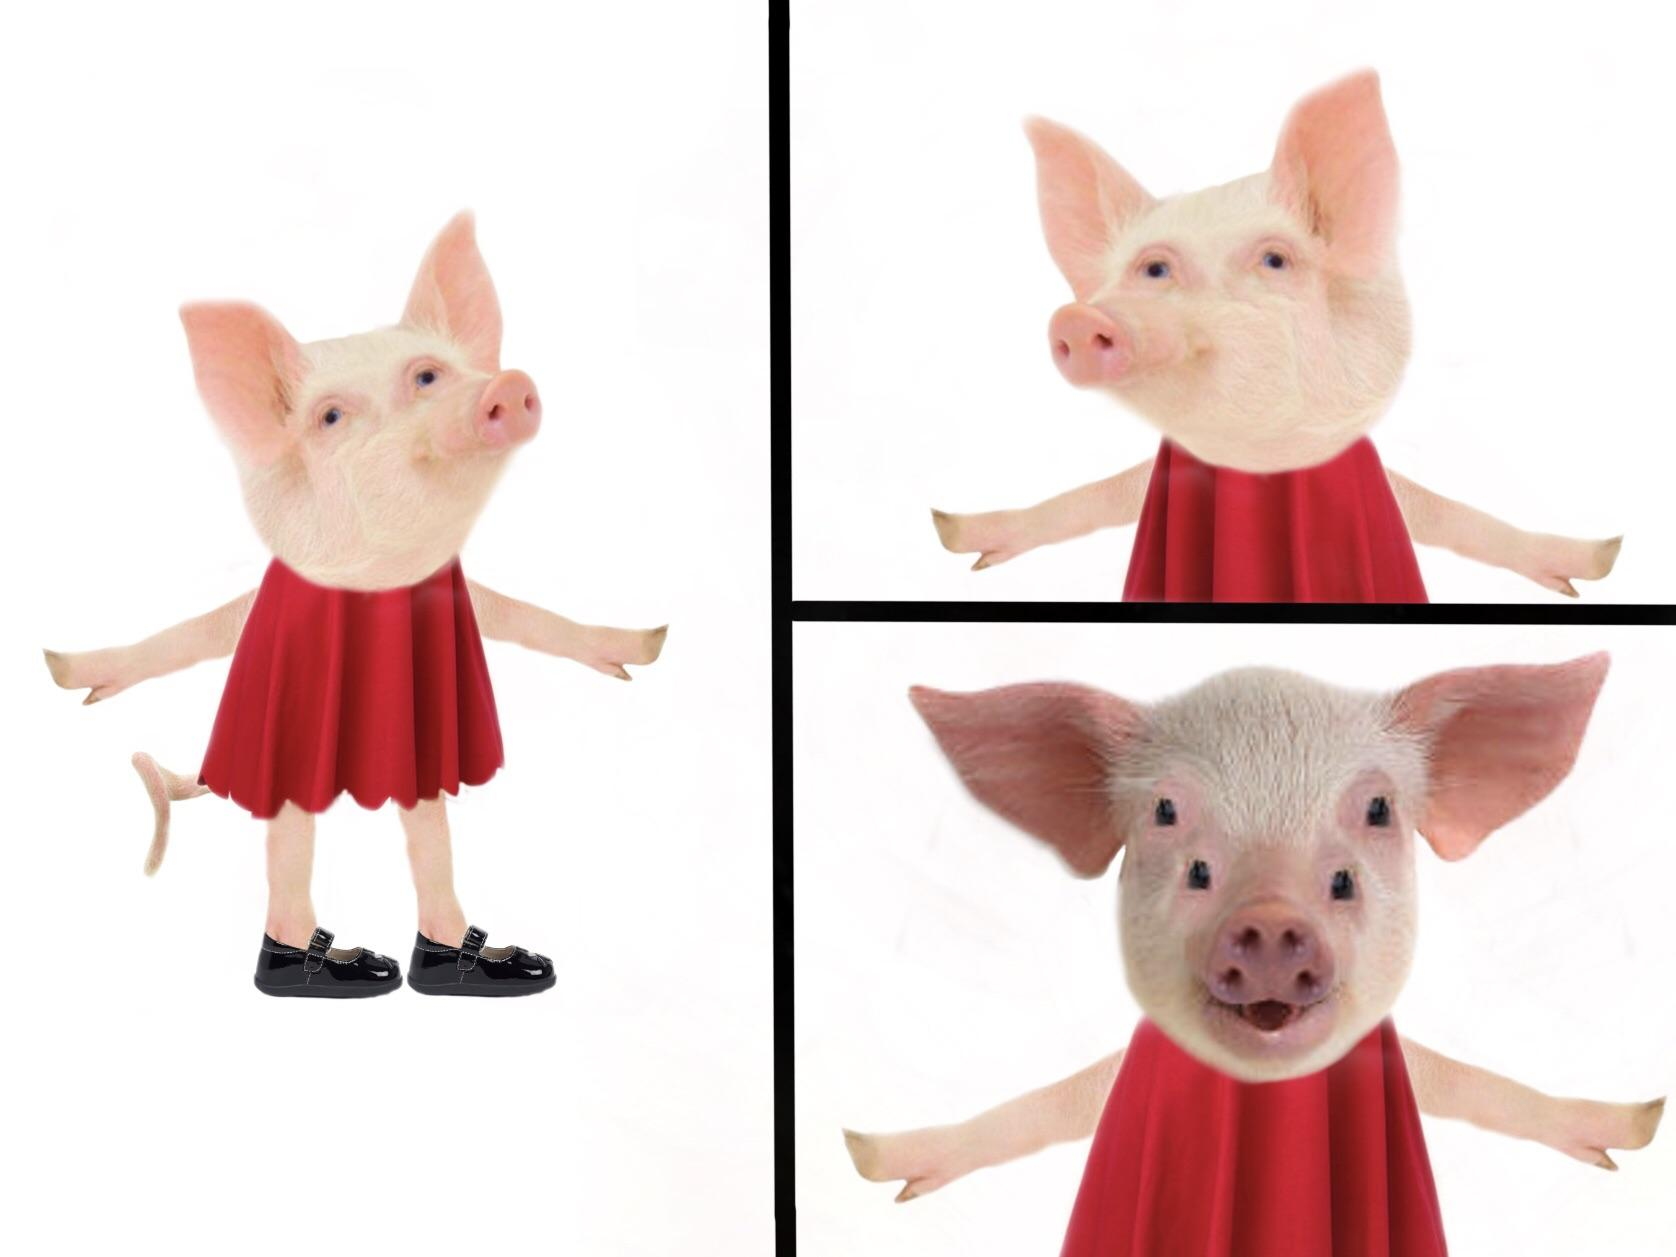 A Photorealistic Version Of That Peppa Pig Expose Peppa Pig Know